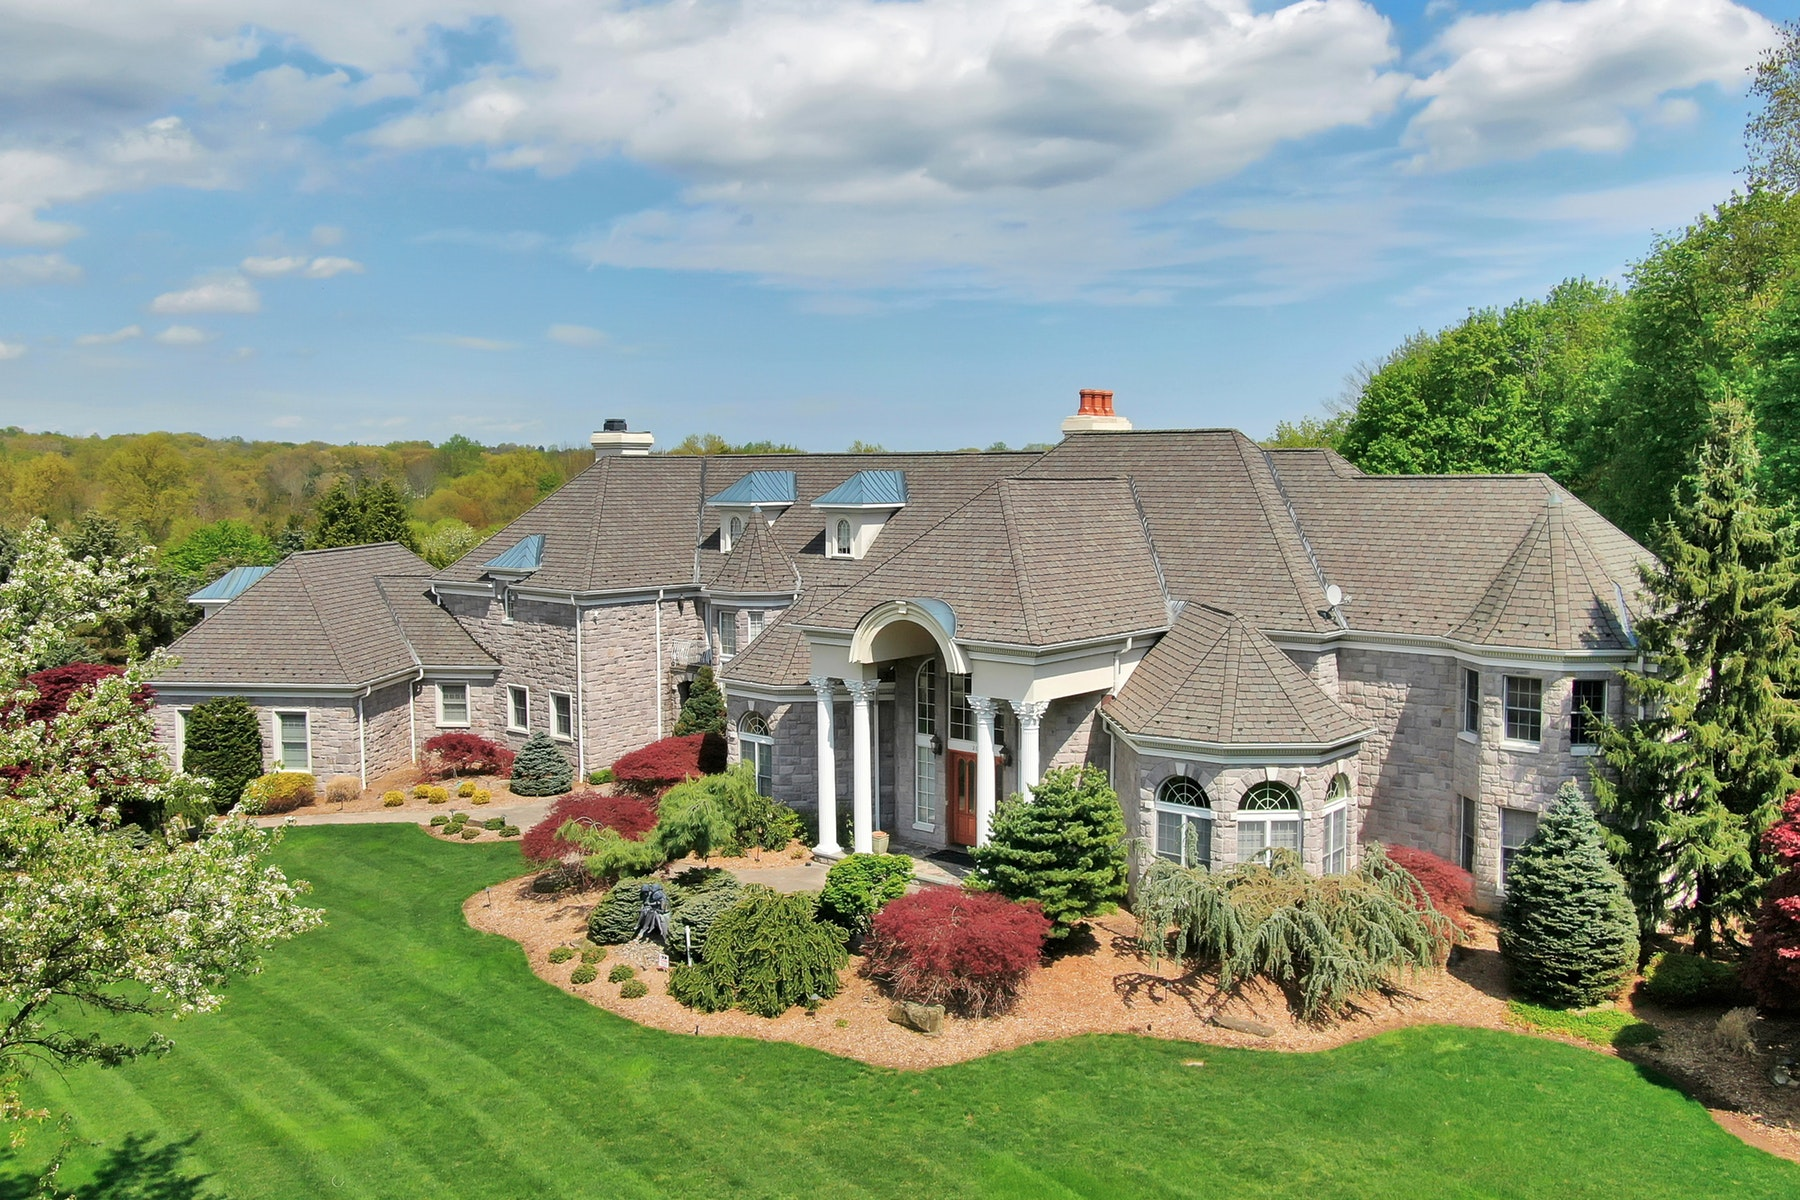 Single Family Home for Sale at Stone Manor Estate 206 Stokes Farm Road, Franklin Lakes, New Jersey 07417 United States